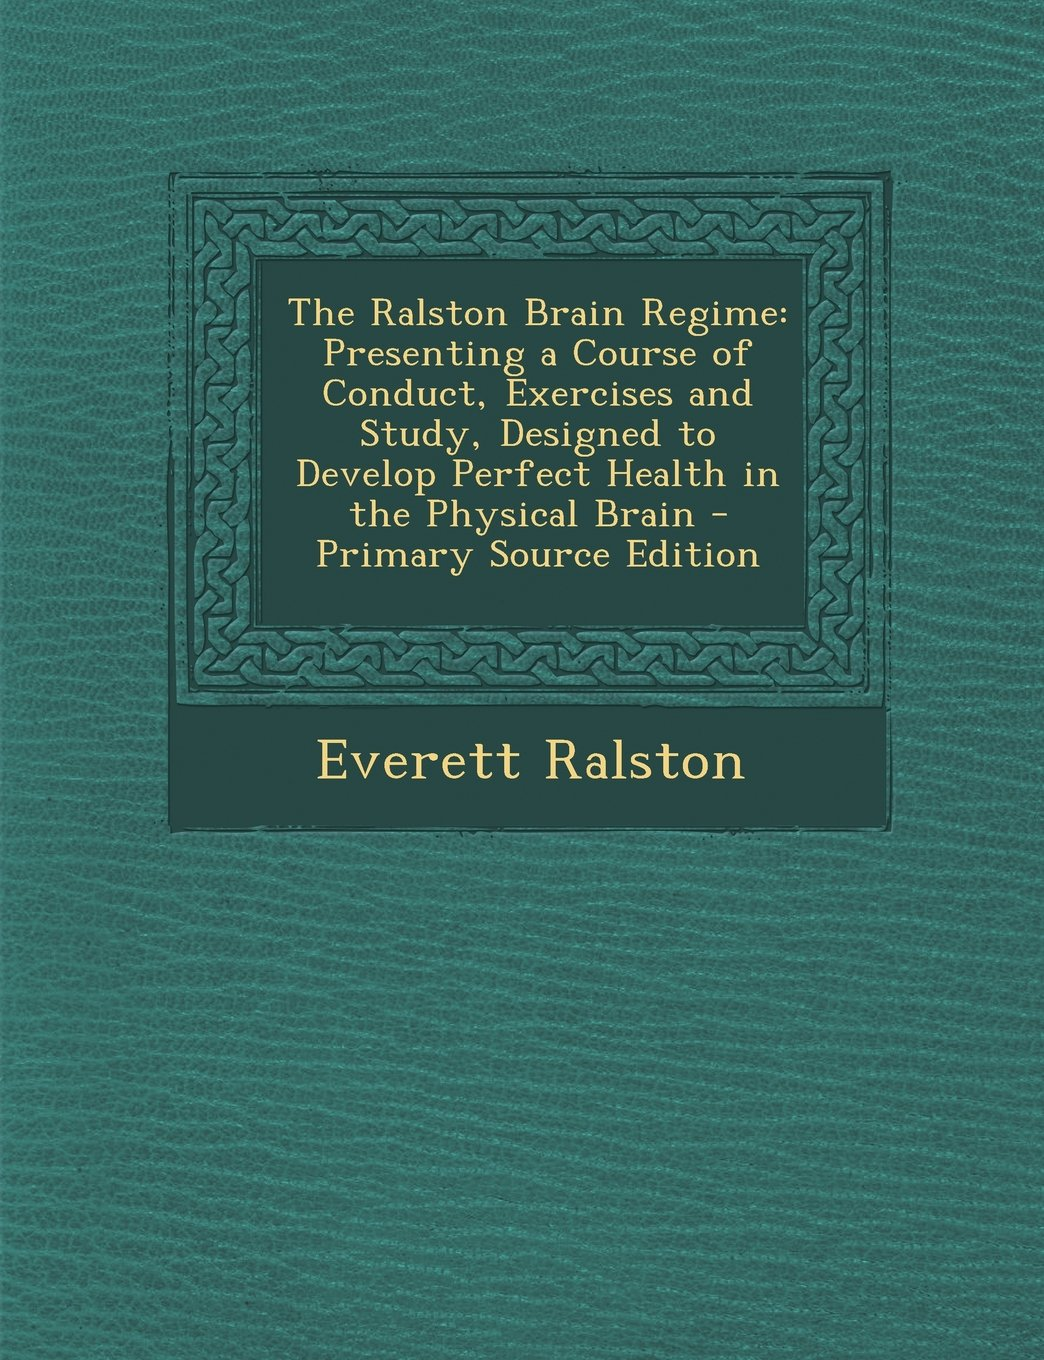 The Ralston Brain Regime: Presenting a Course of Conduct, Exercises and Study, Designed to Develop Perfect Health in the Physical Brain - Primar pdf epub